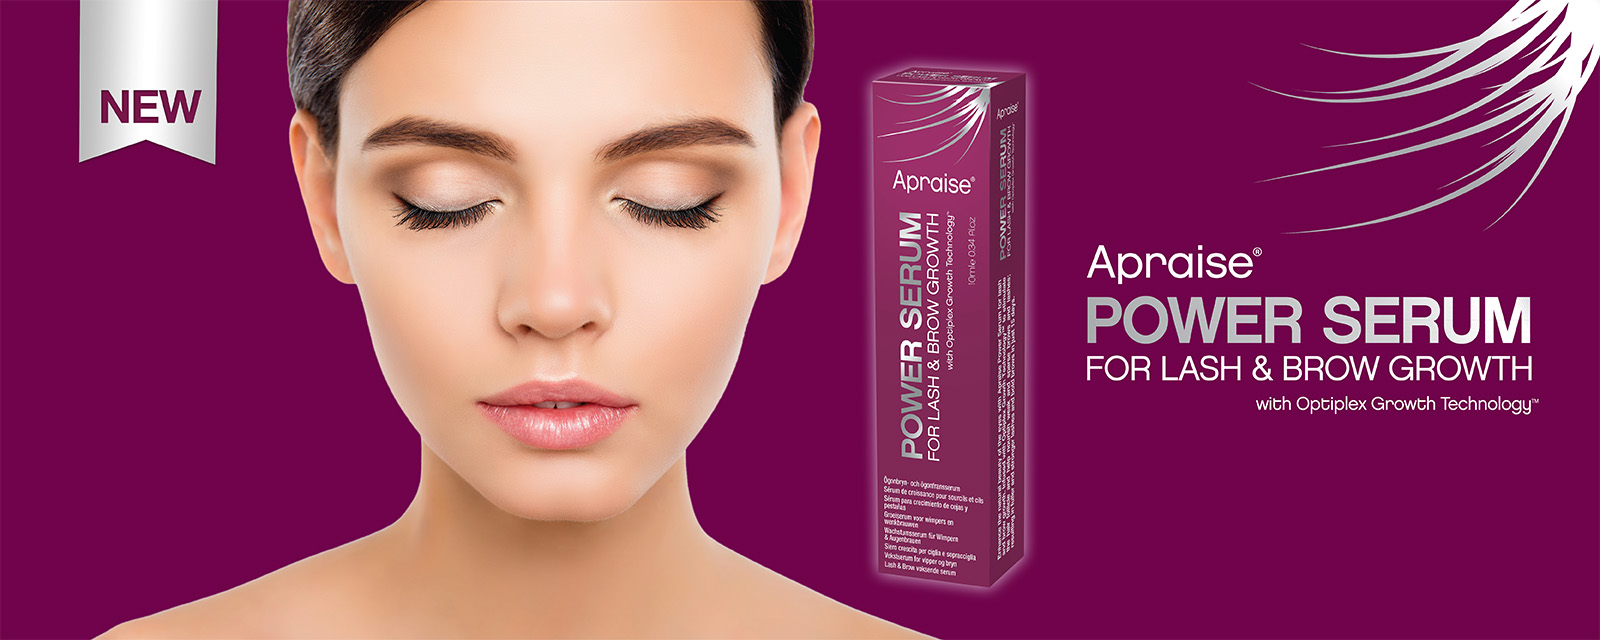 New Product Launch - Apraise Power Serum Image